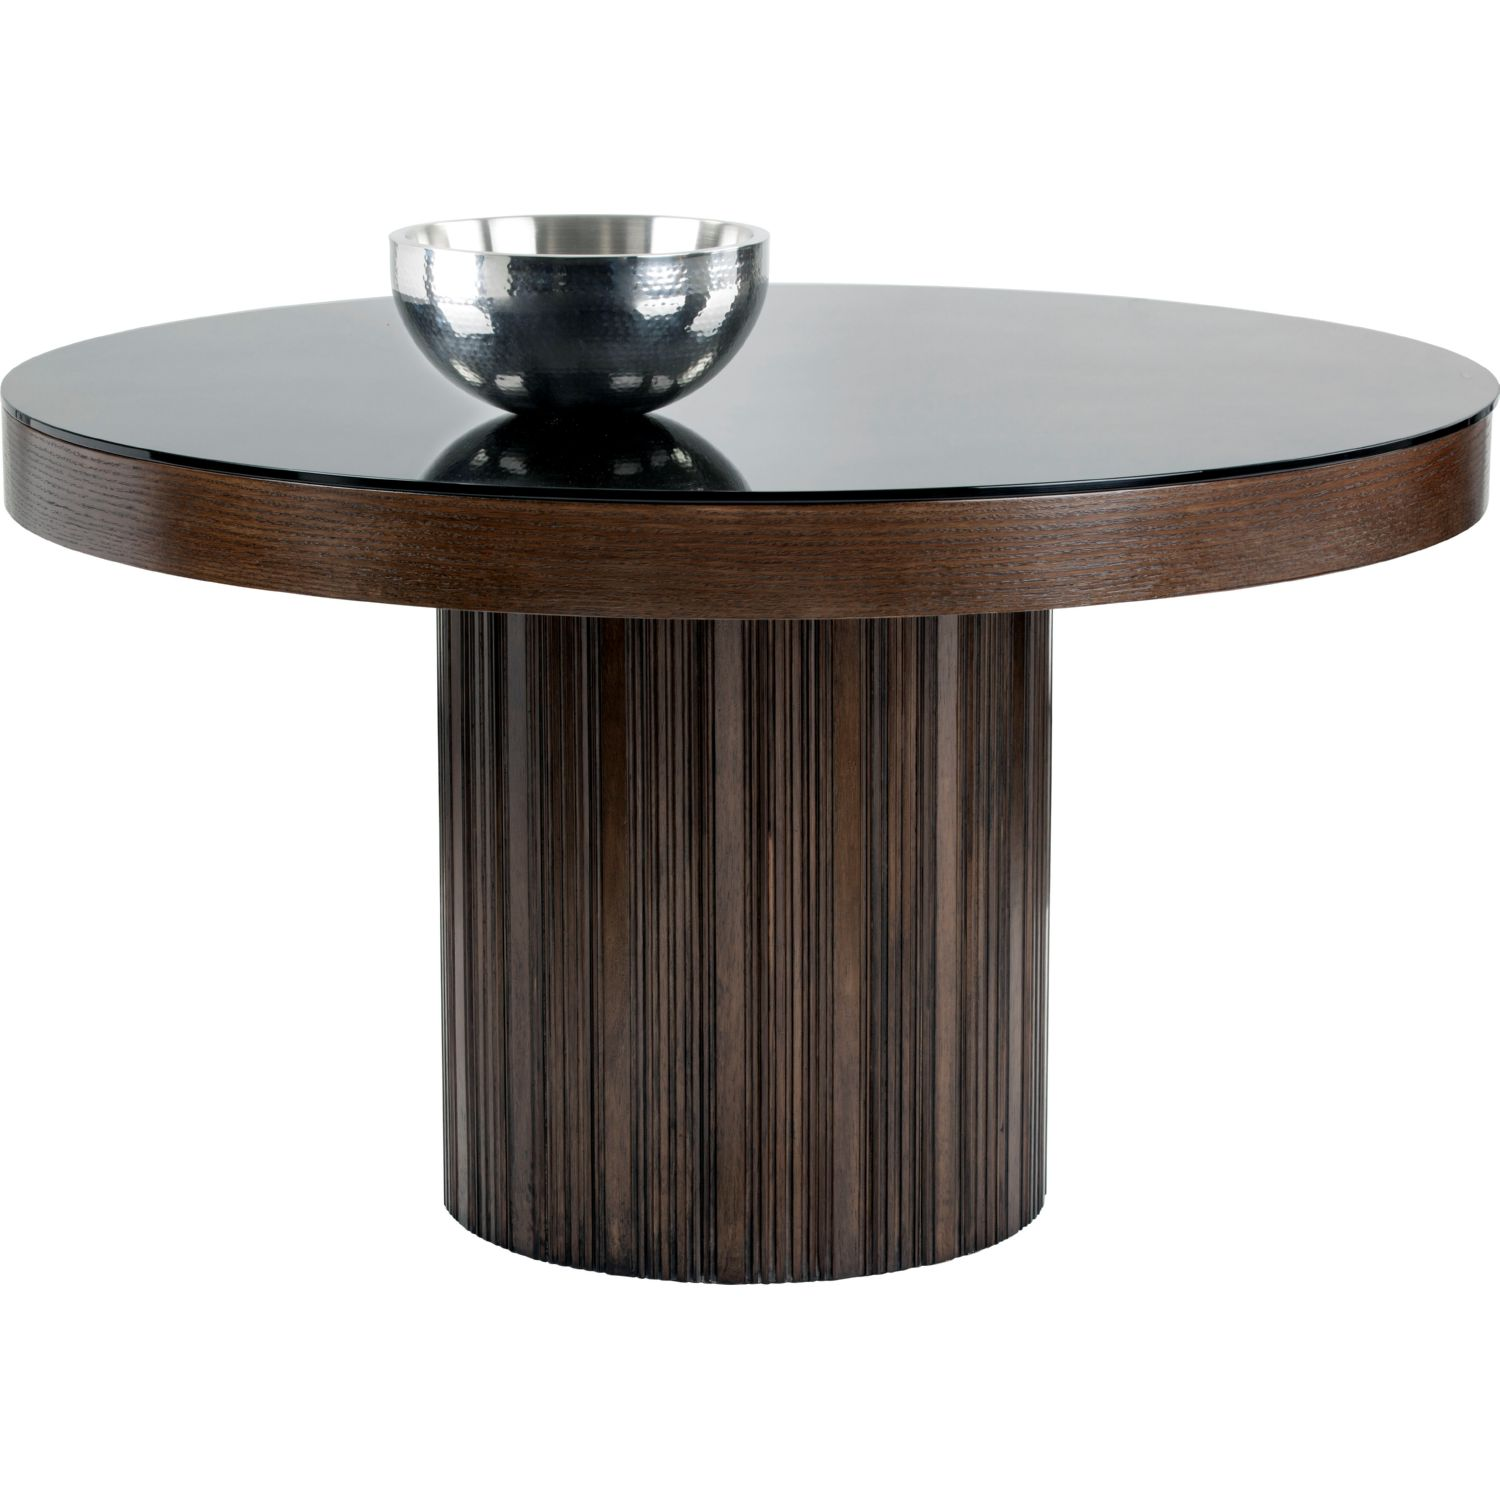 Sunpan 101073 Jakarta Round Dining Table in Etched Espresso Wood w